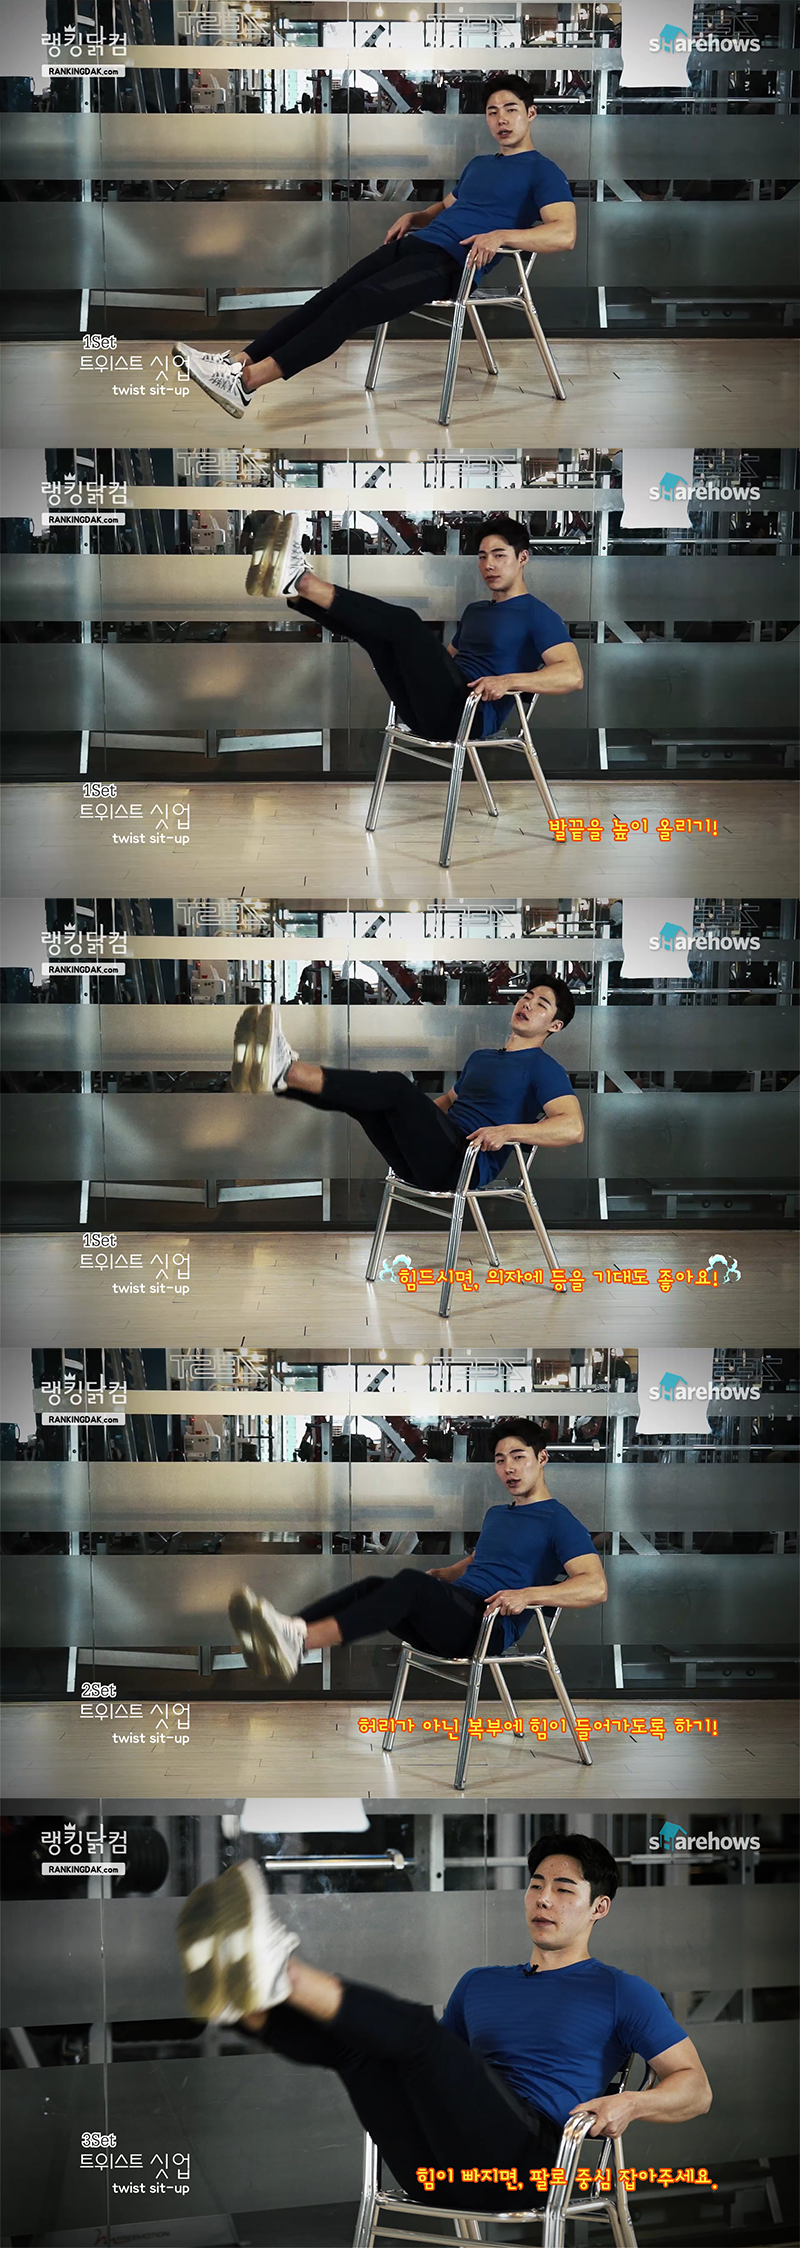 body-fat-buring-workouts-with-a-chair_02